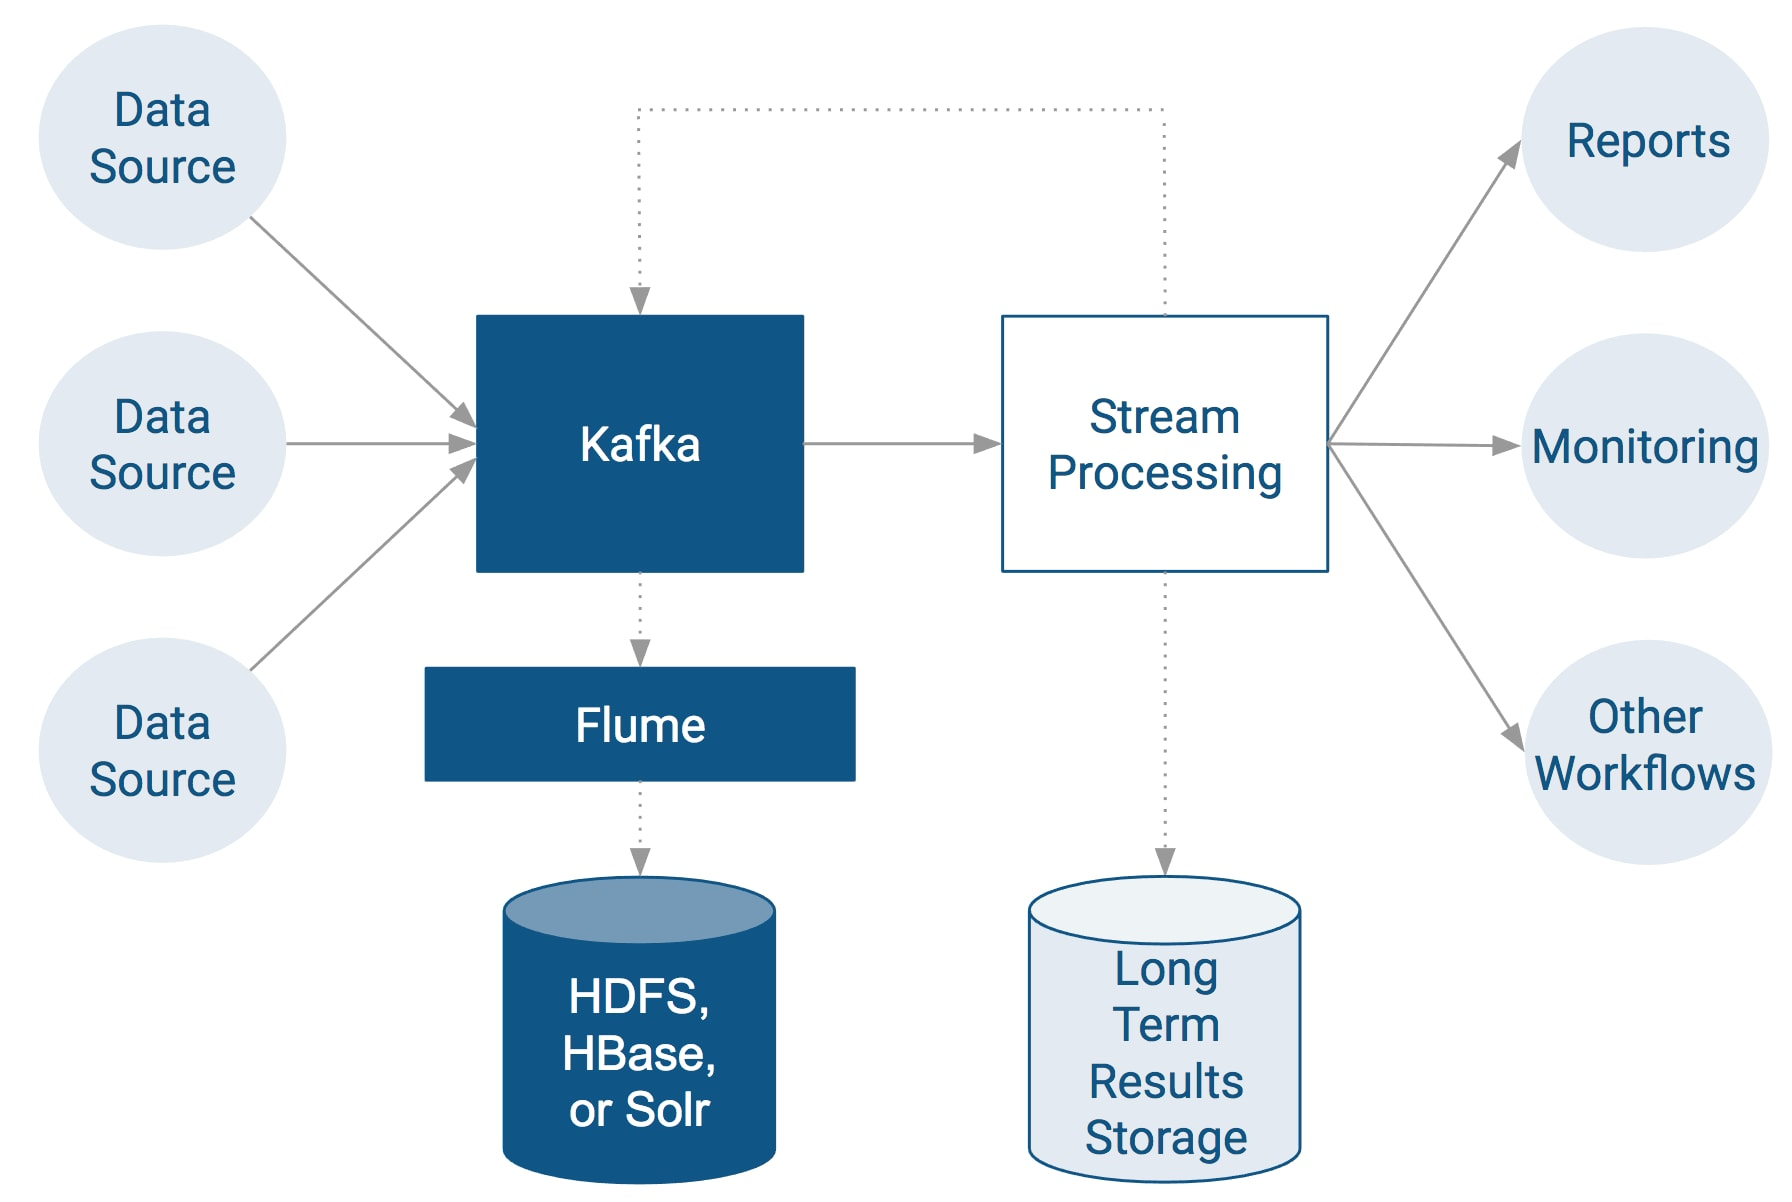 Setting up an End-to-End Data Streaming Pipeline | 6 3 x | Cloudera